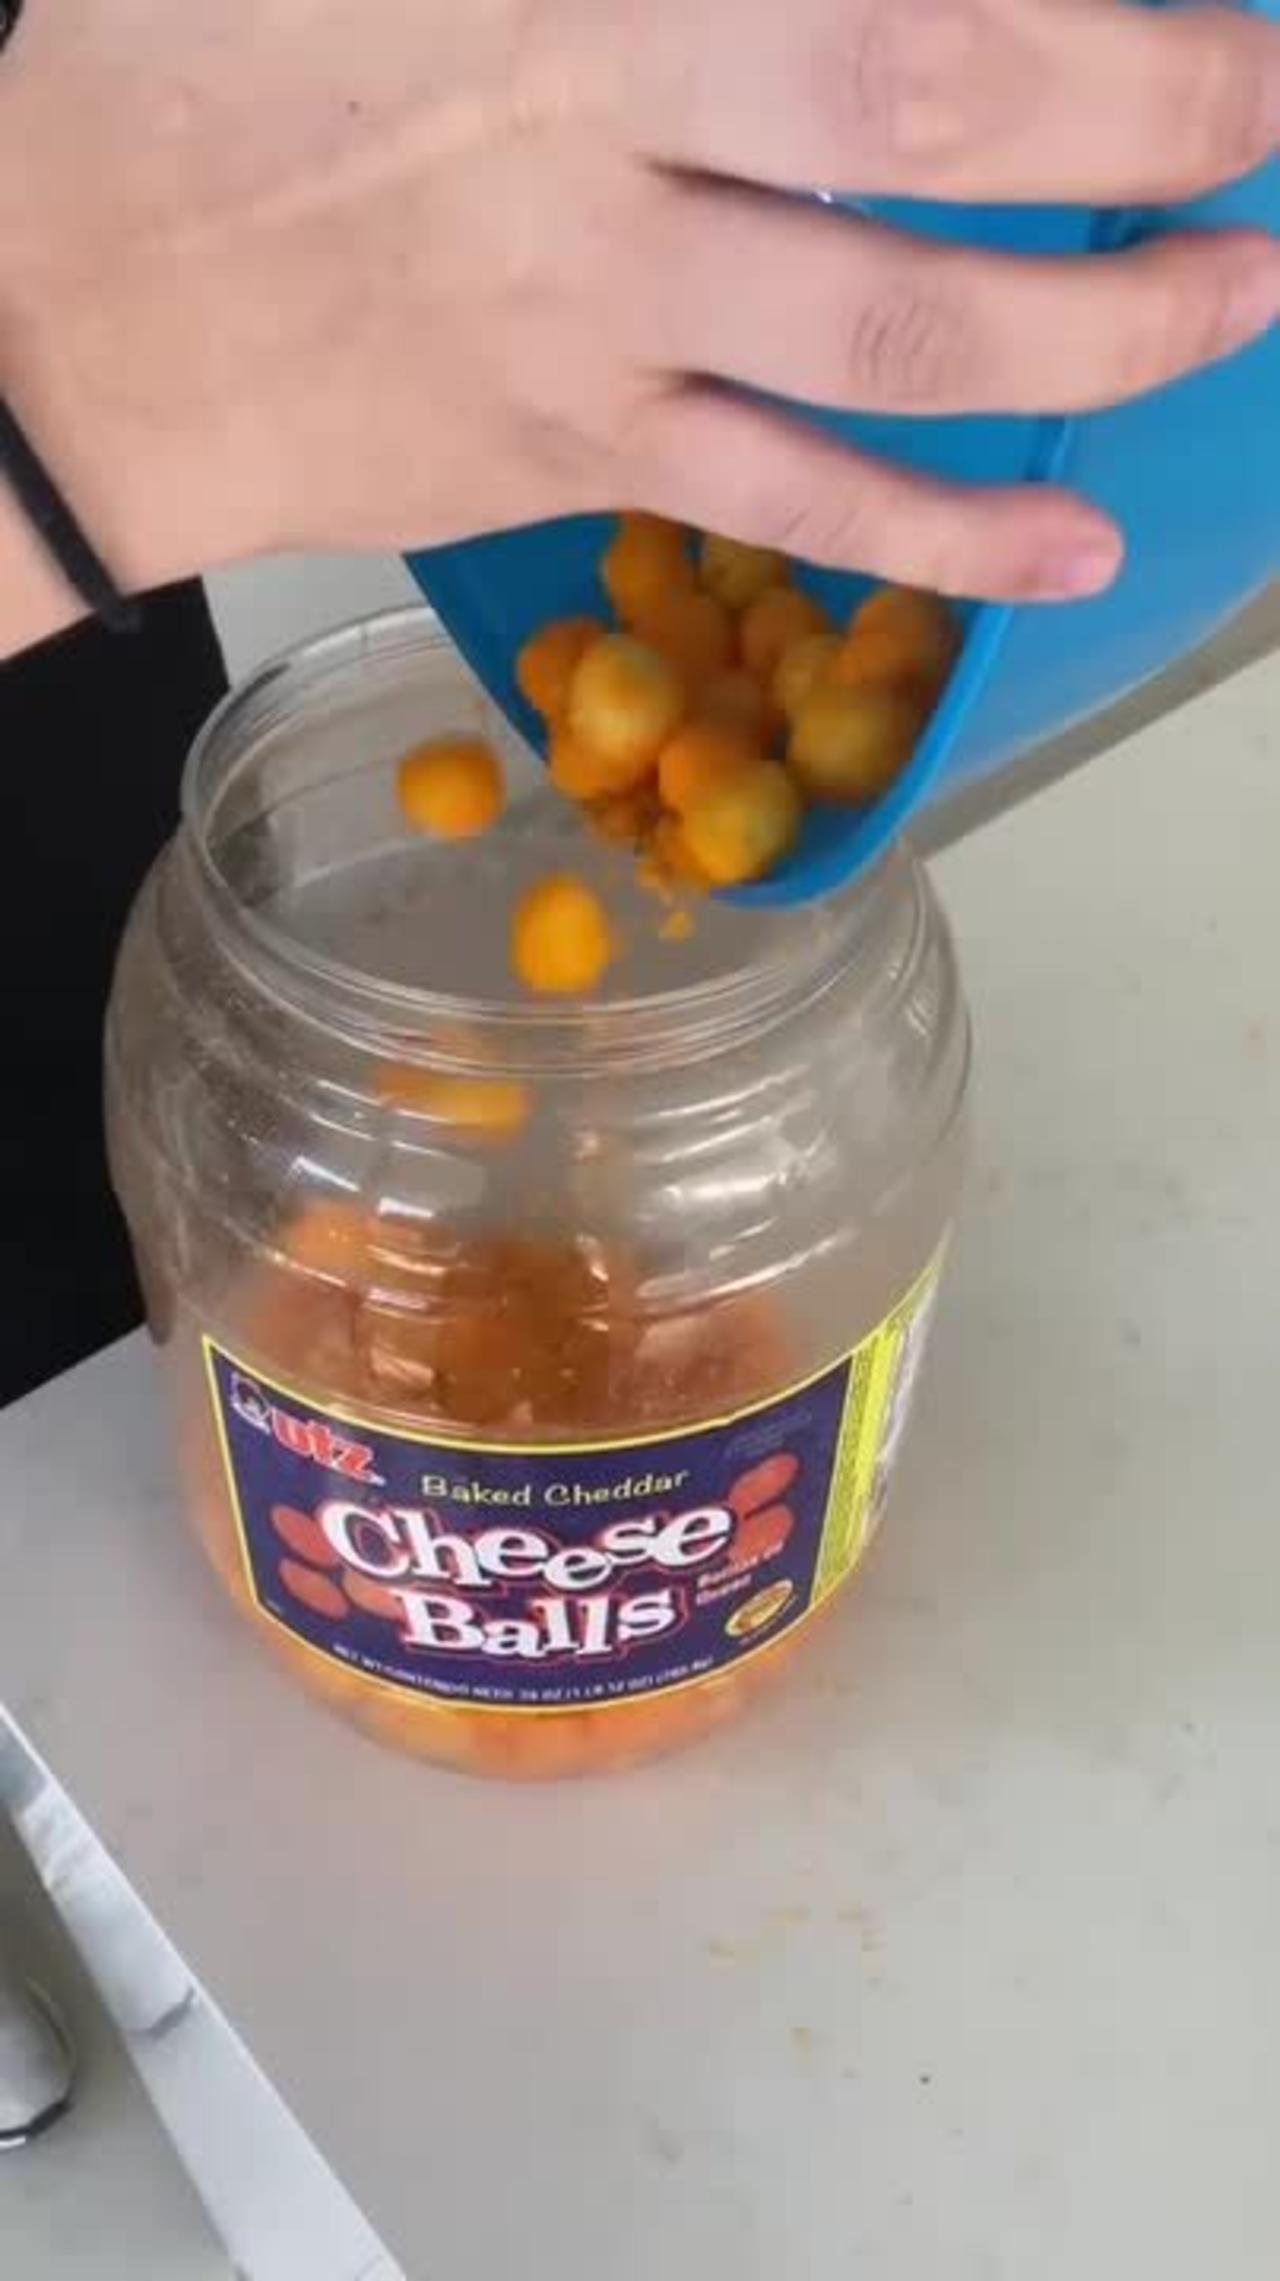 Guy Pranks Friend by Cutting Bottom of Cheese Balls' Container